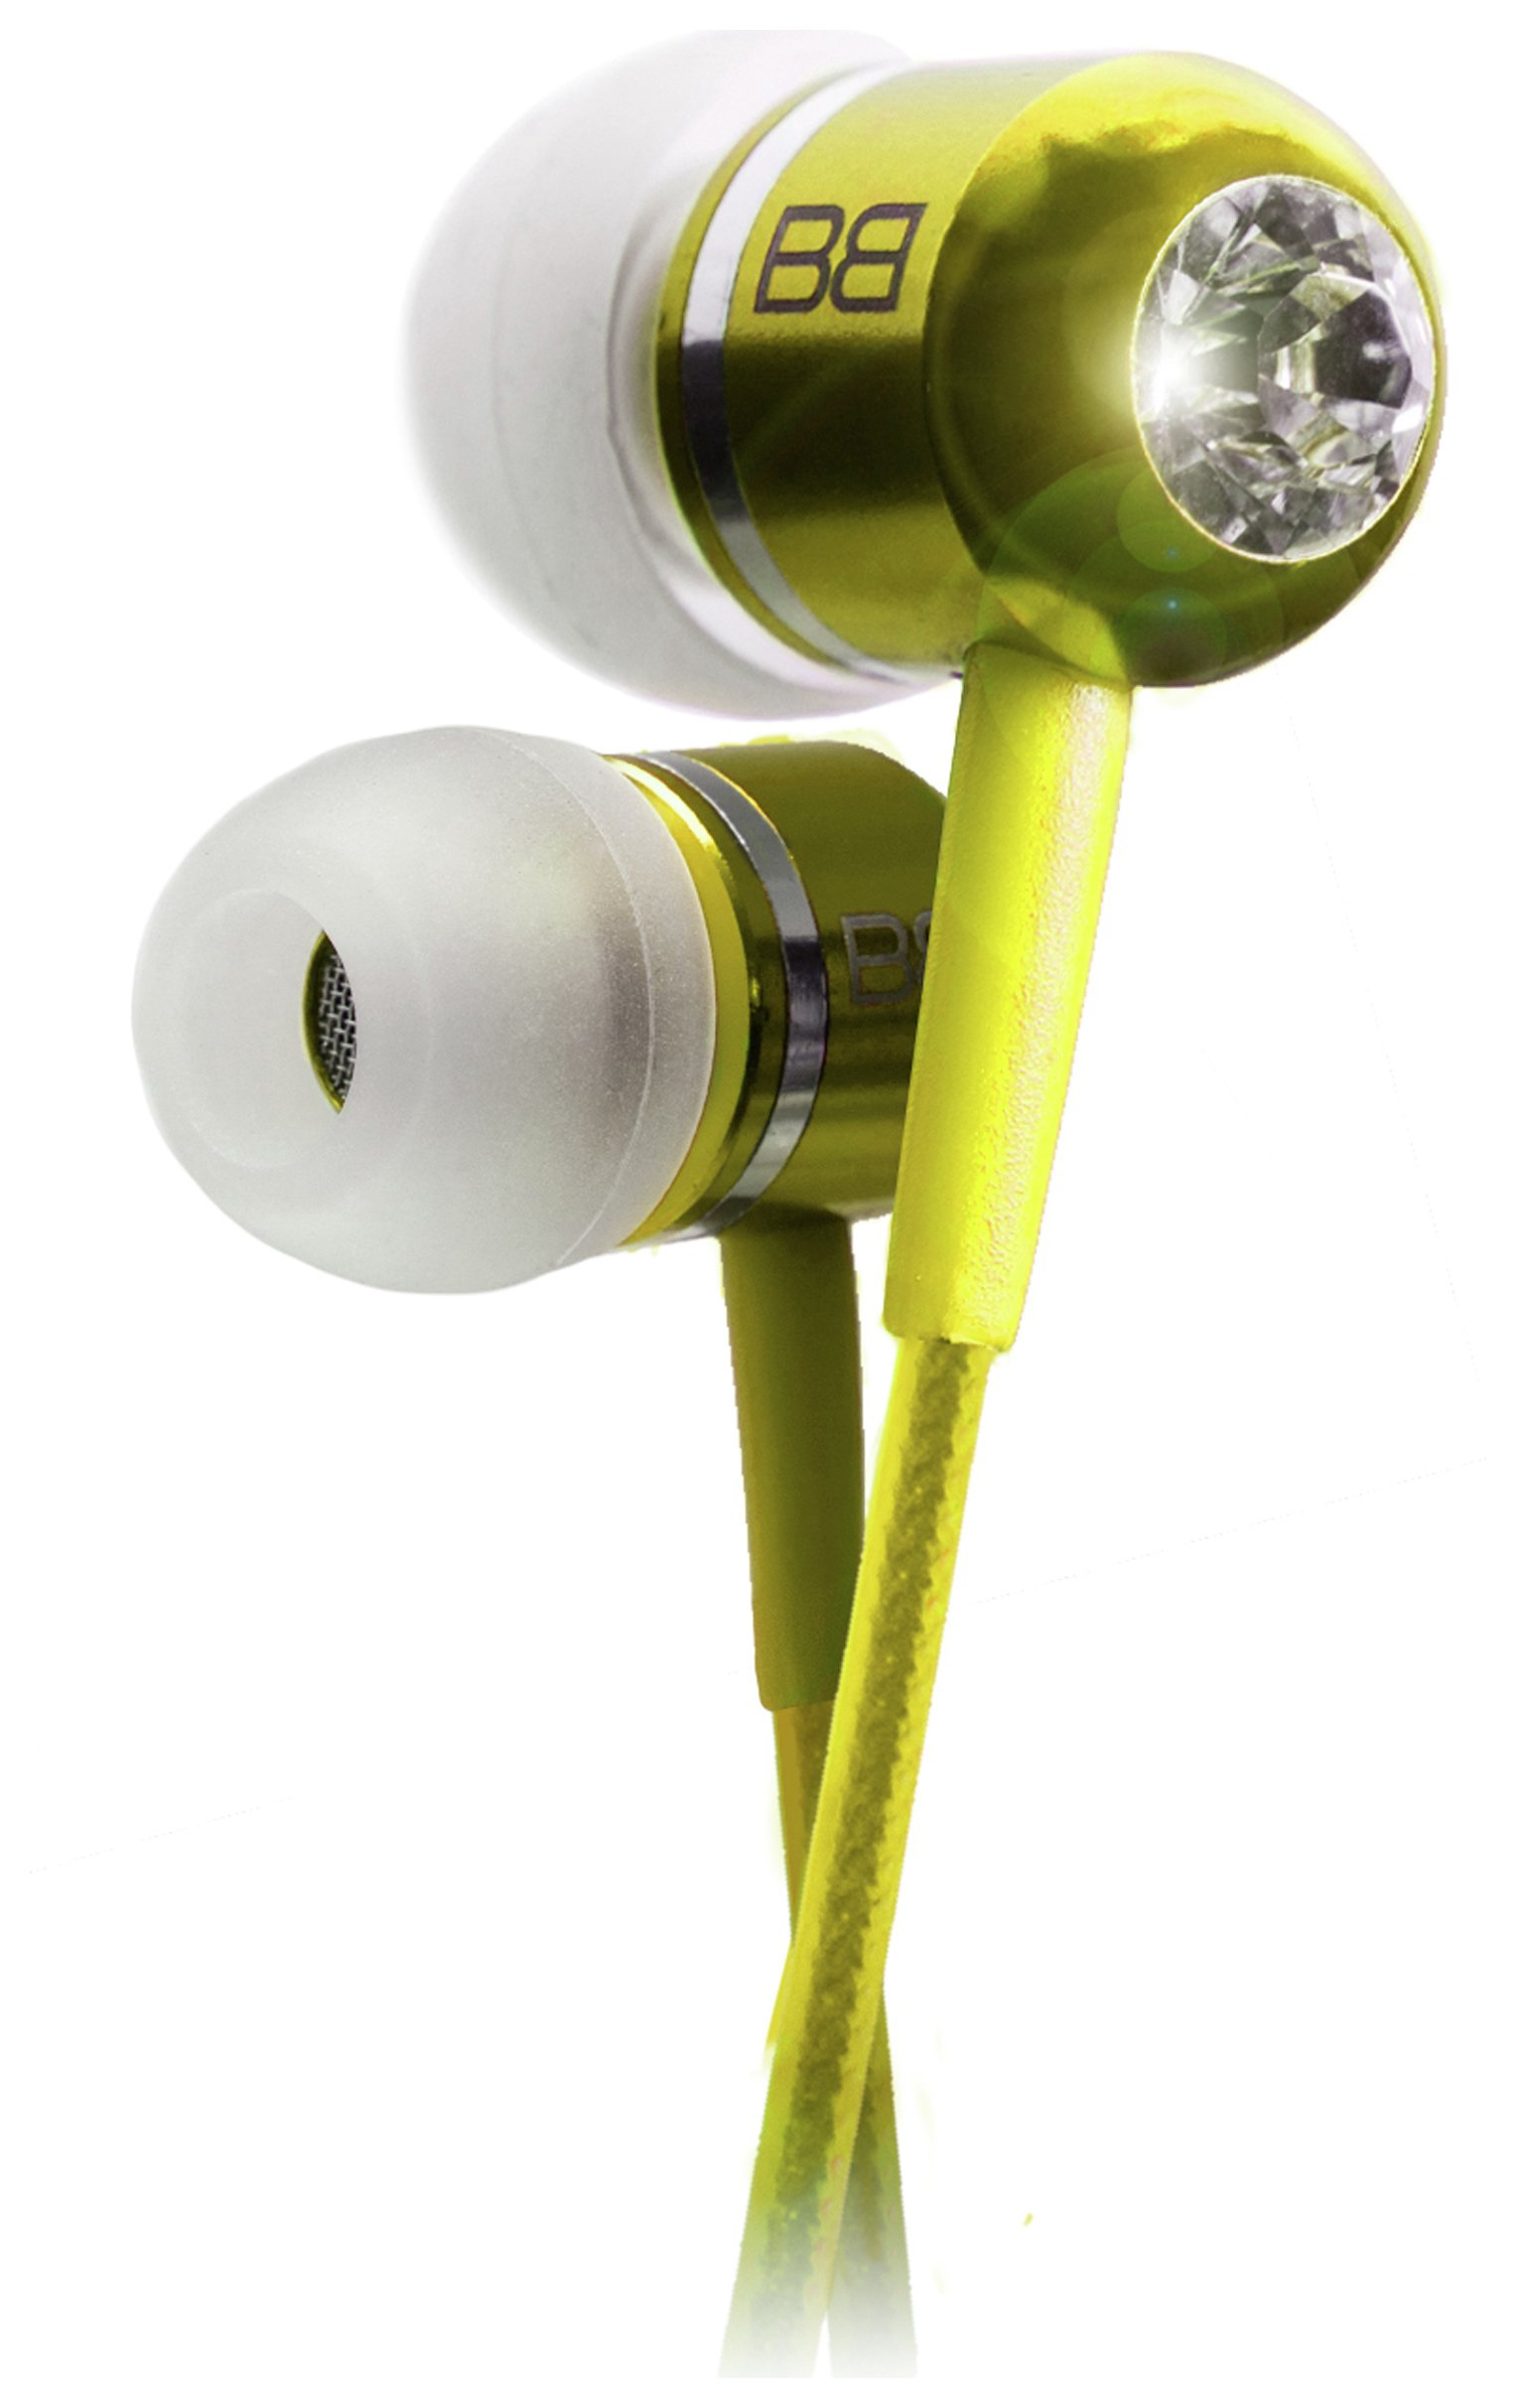 Image of BassBuds In Ear Headphones with MP3 Controller - Yellow